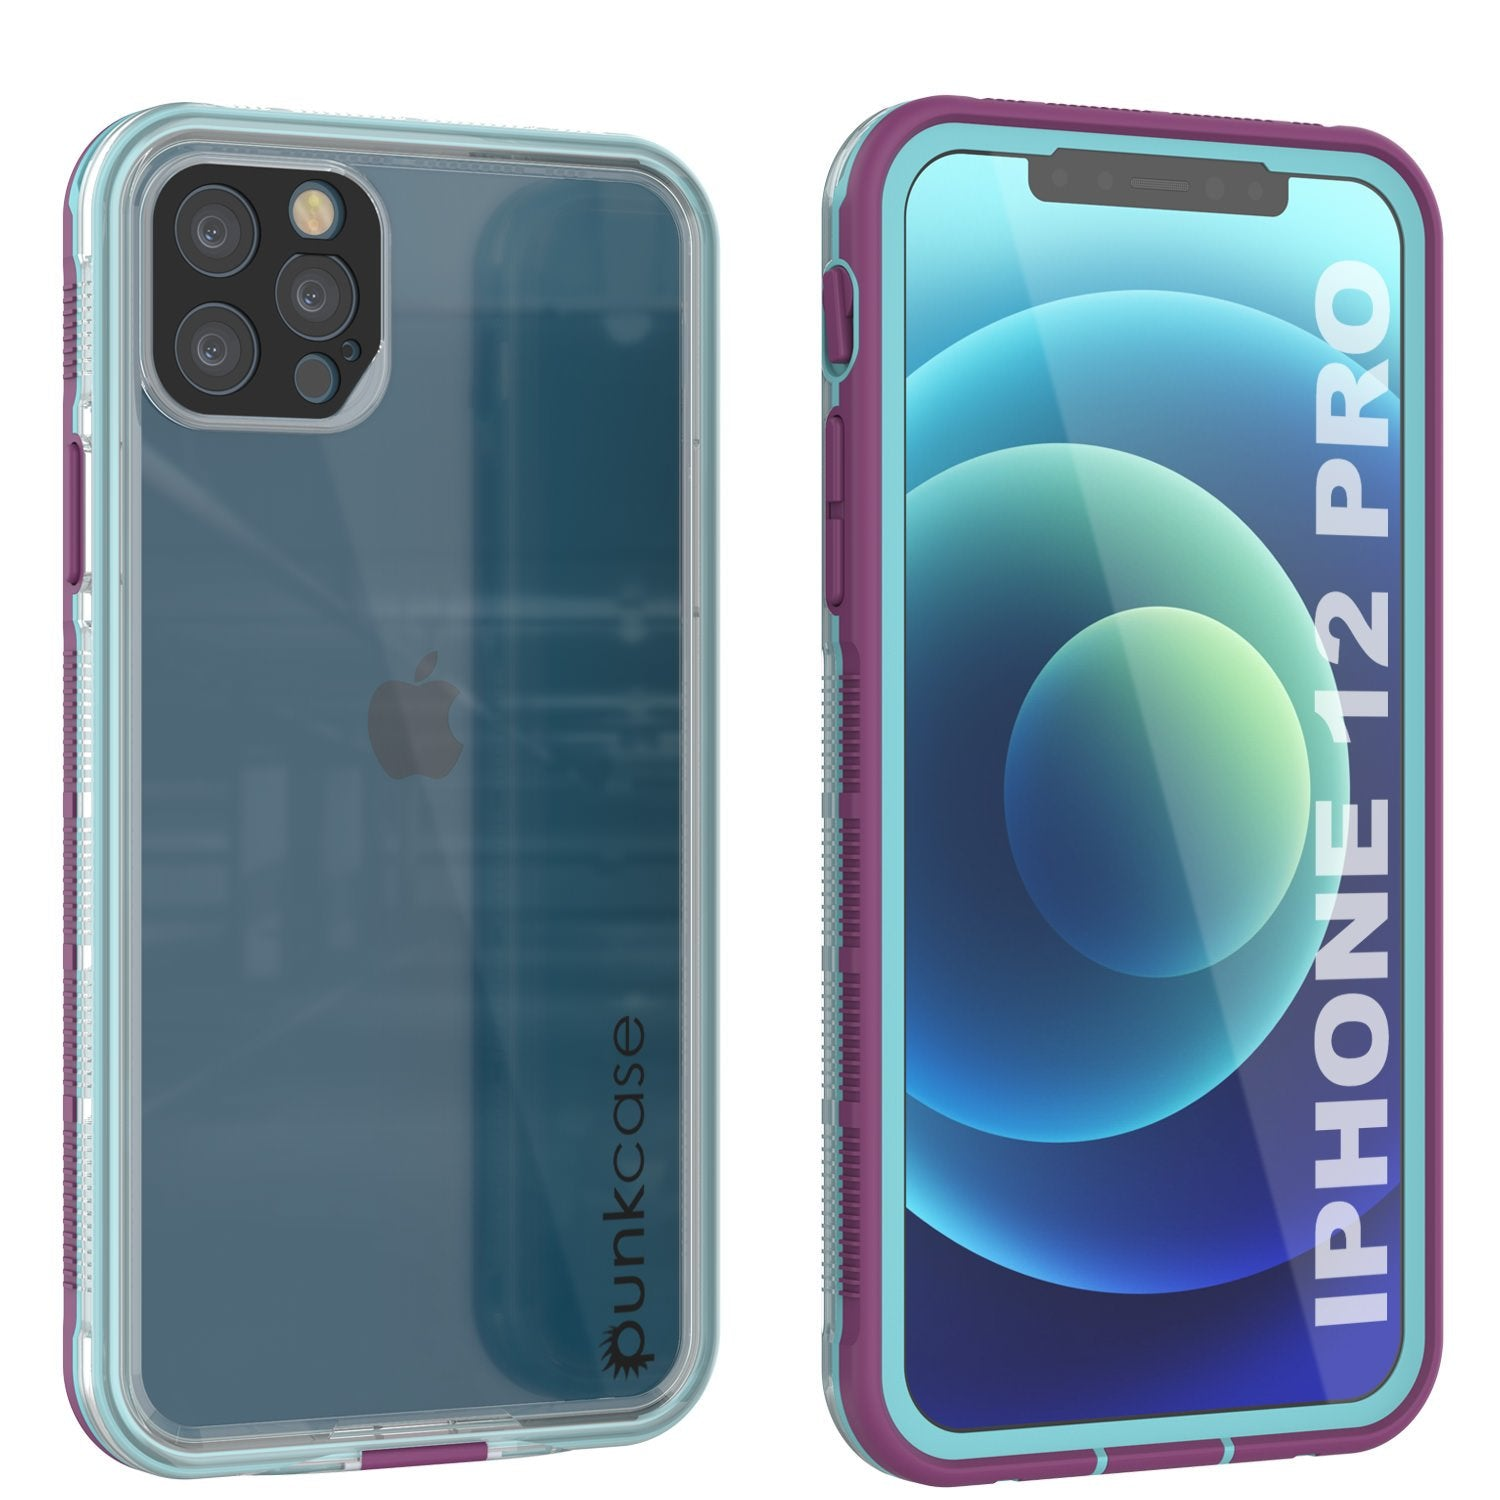 Punkcase iPhone 12 Pro Waterproof Case [Aqua Series] Armor Cover [Clear Purple] [Clear Back]